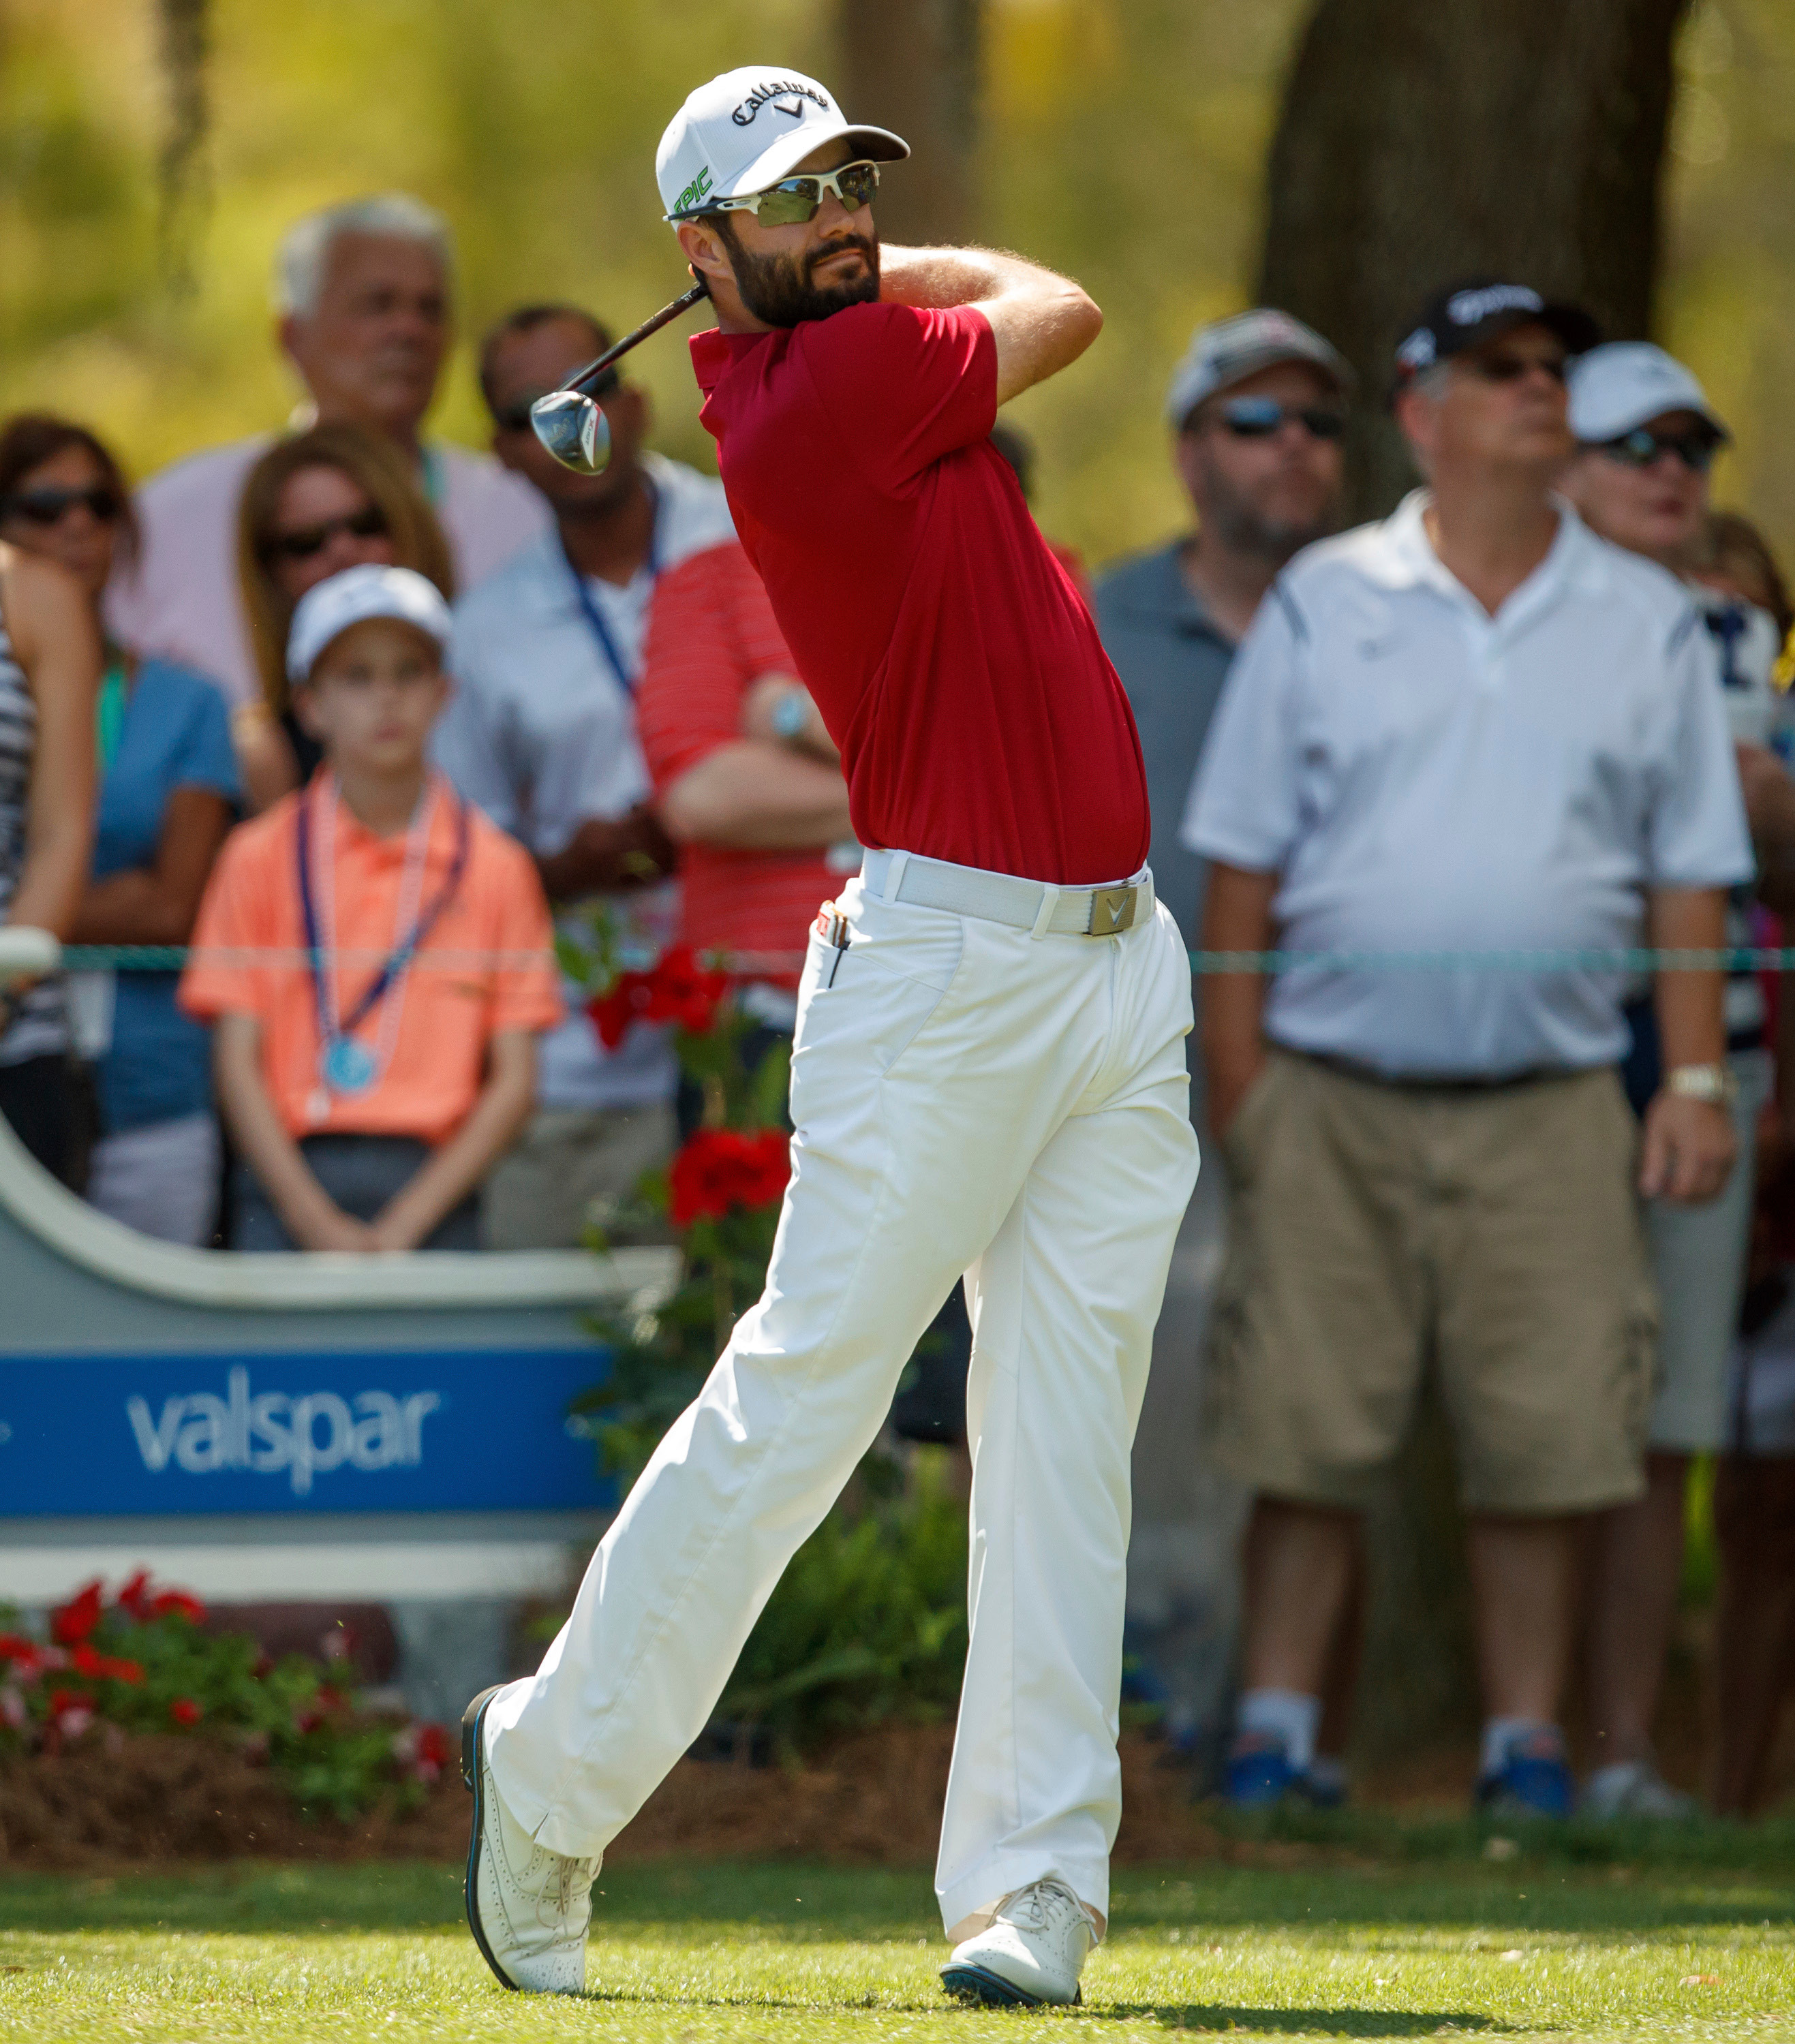 Adam Hedwin, of Canada, tees off on the 2nd hole during the third round of the Valspar Championship golf tournament Saturday, March 11, 2017, at Innisbrook in Palm Harbor, Fla. (AP Photo/Mike Carlson)